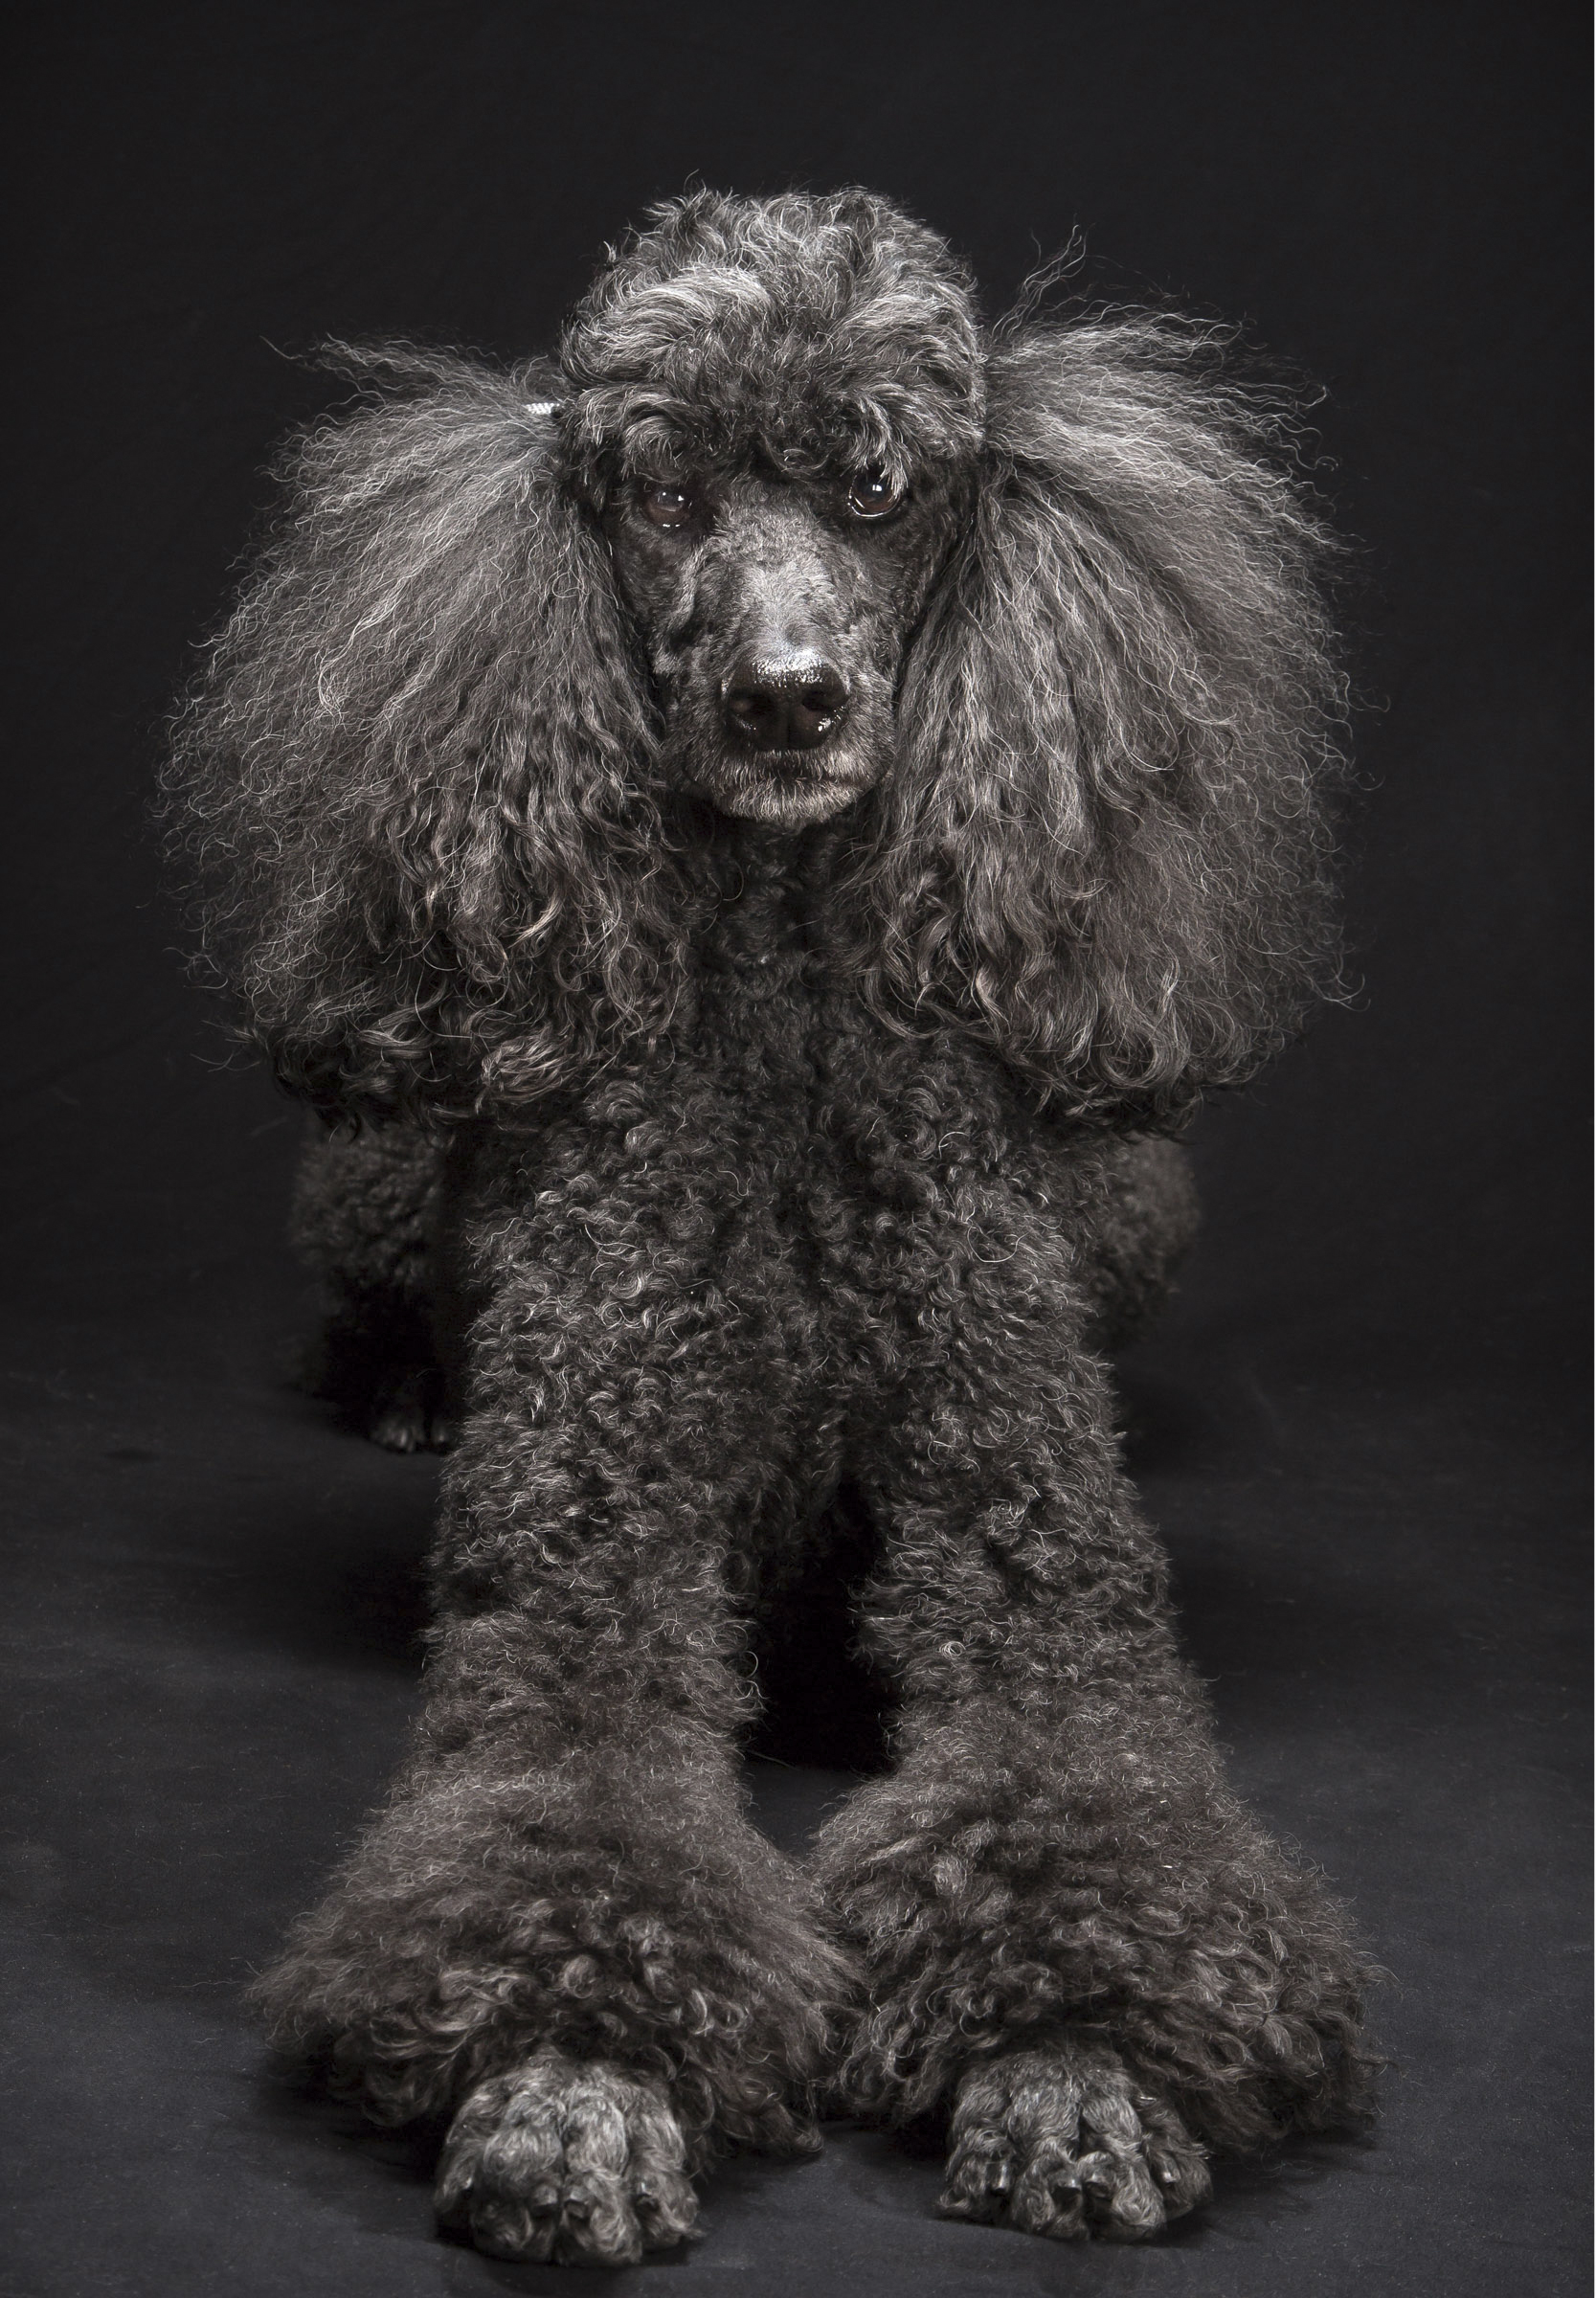 Labradoodle Breed Creator Says He Created Frankensteins